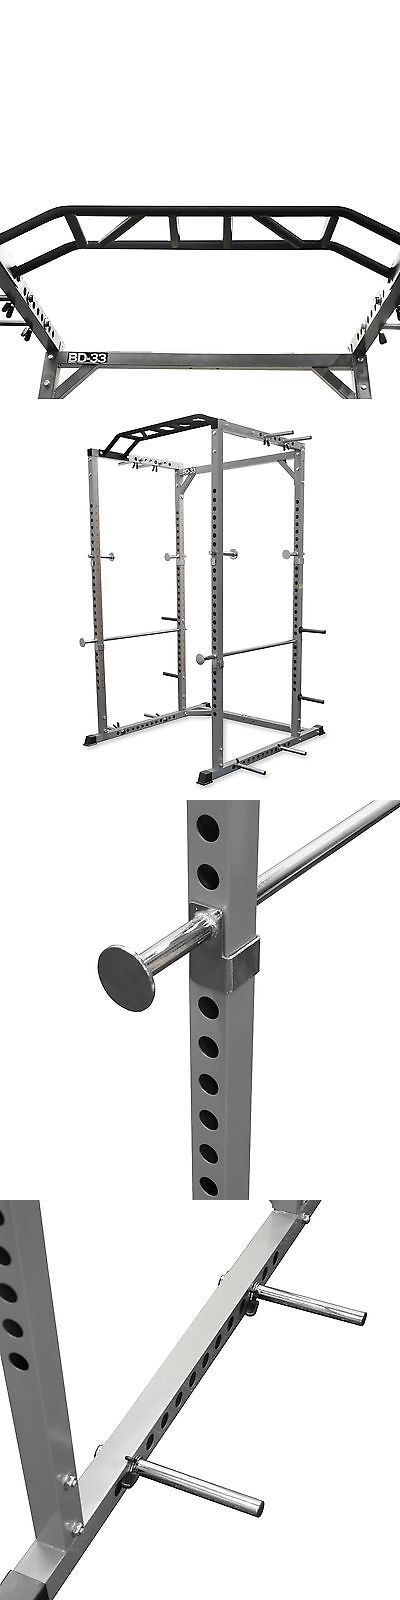 1000 Ideas About Power Rack On Pinterest Homemade Gym